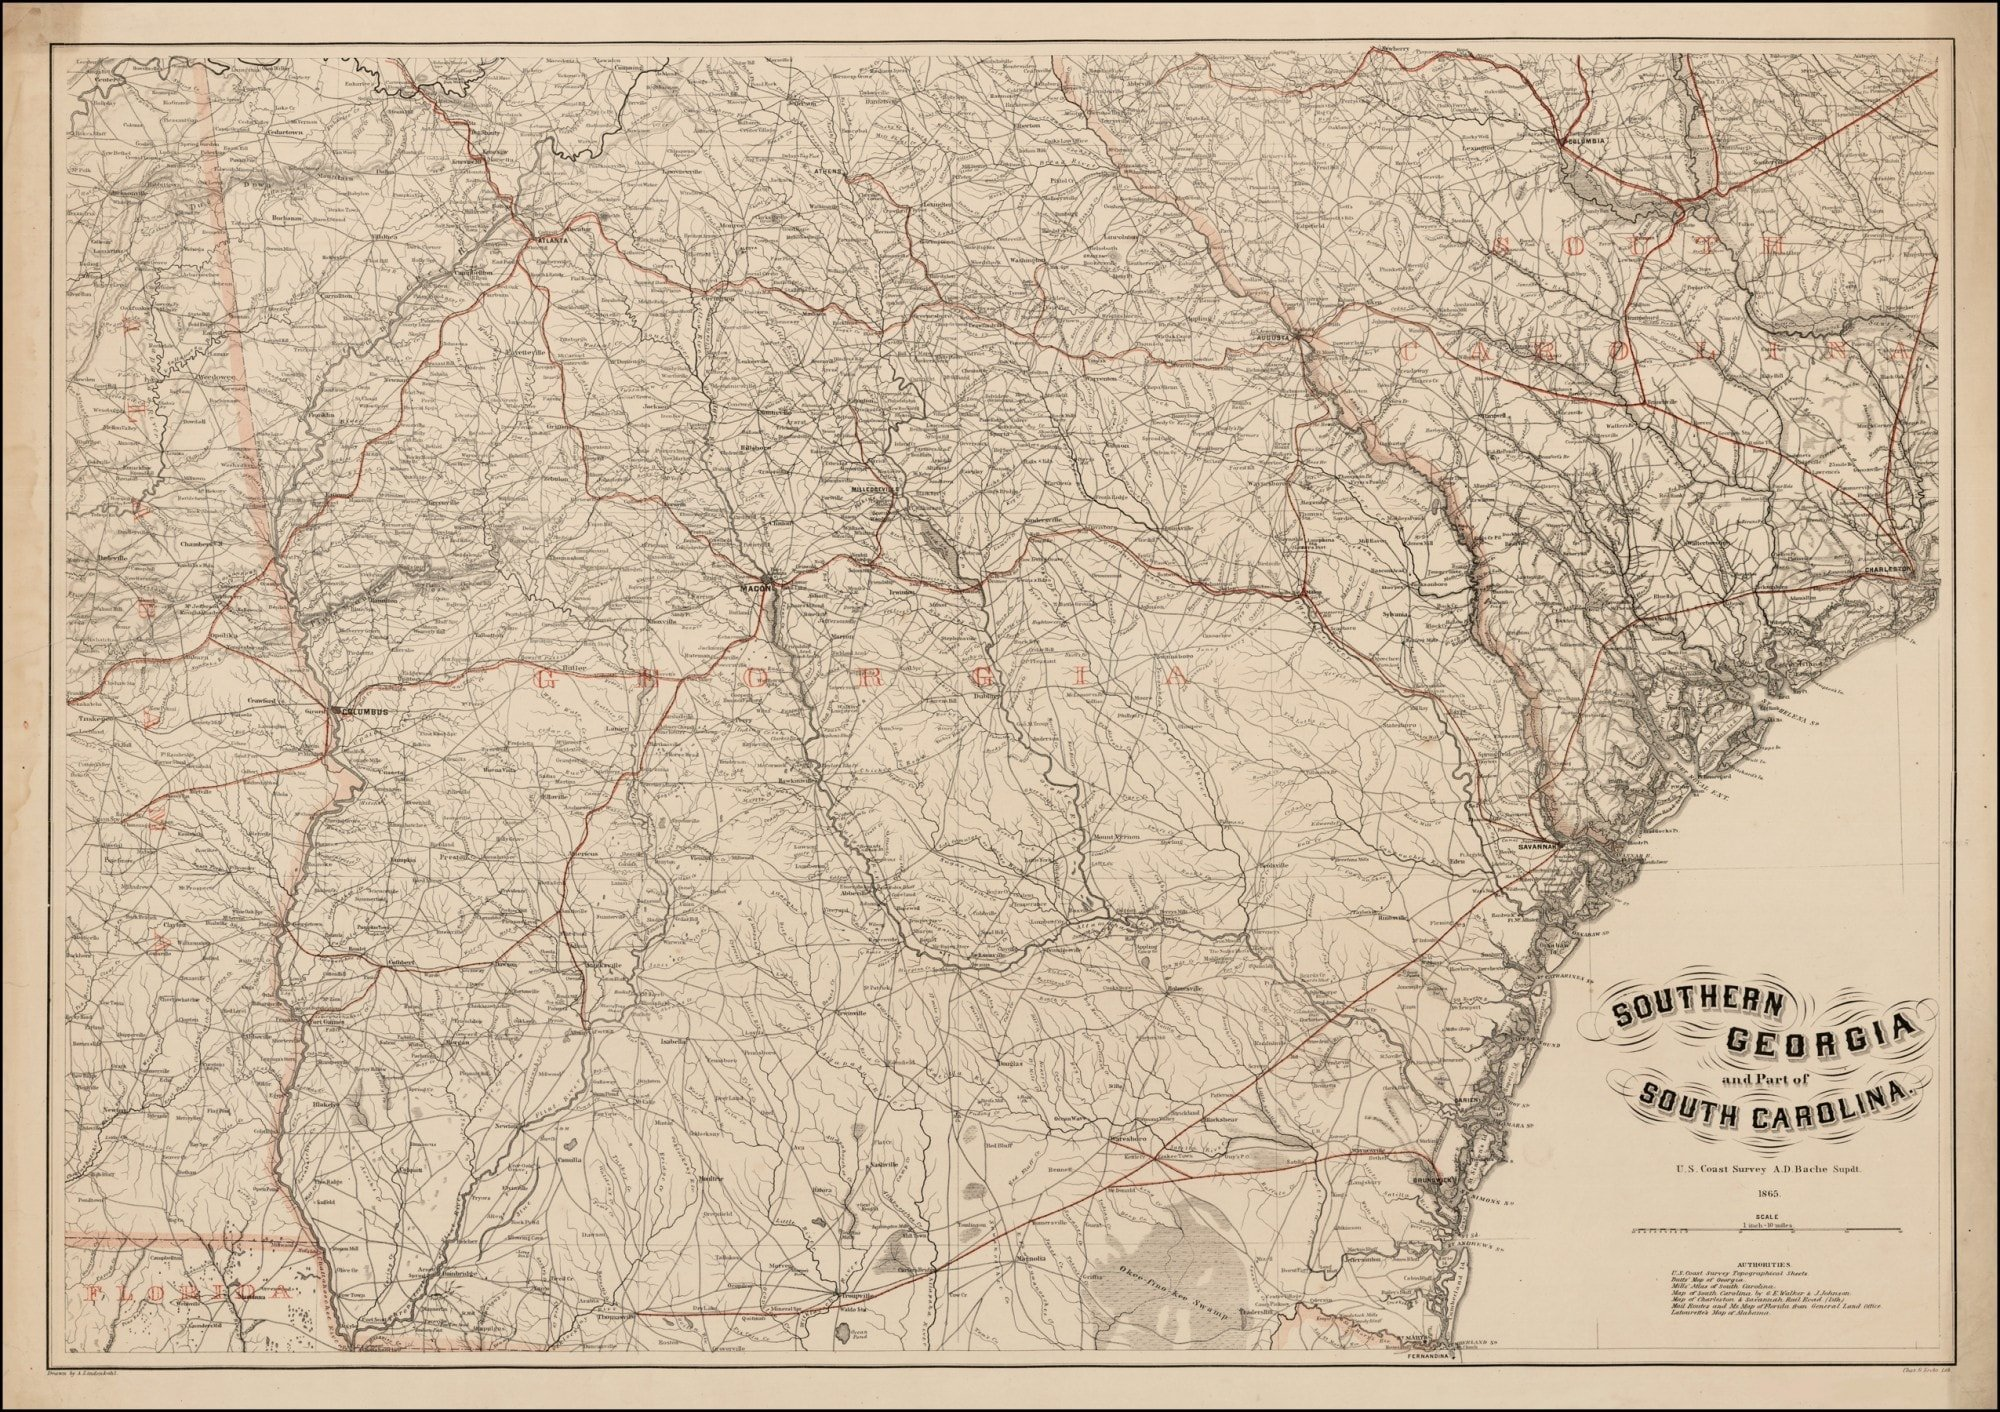 Map Of Georgia And South Carolina Coast.Exceptional Map Of Georgia And South Carolina Prepared For The